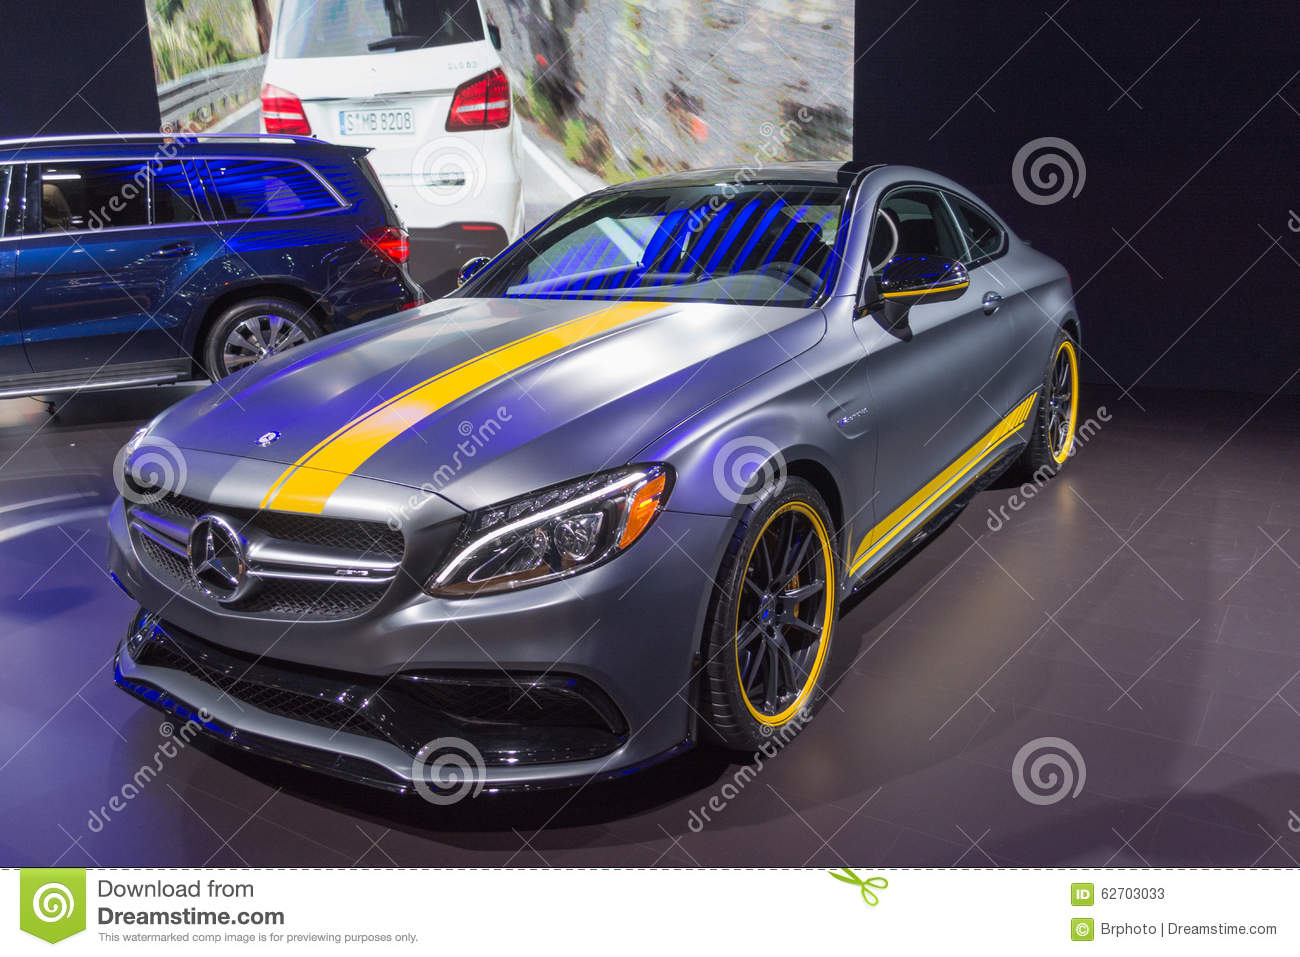 Benz C63 AMG Coupe της Mercedes